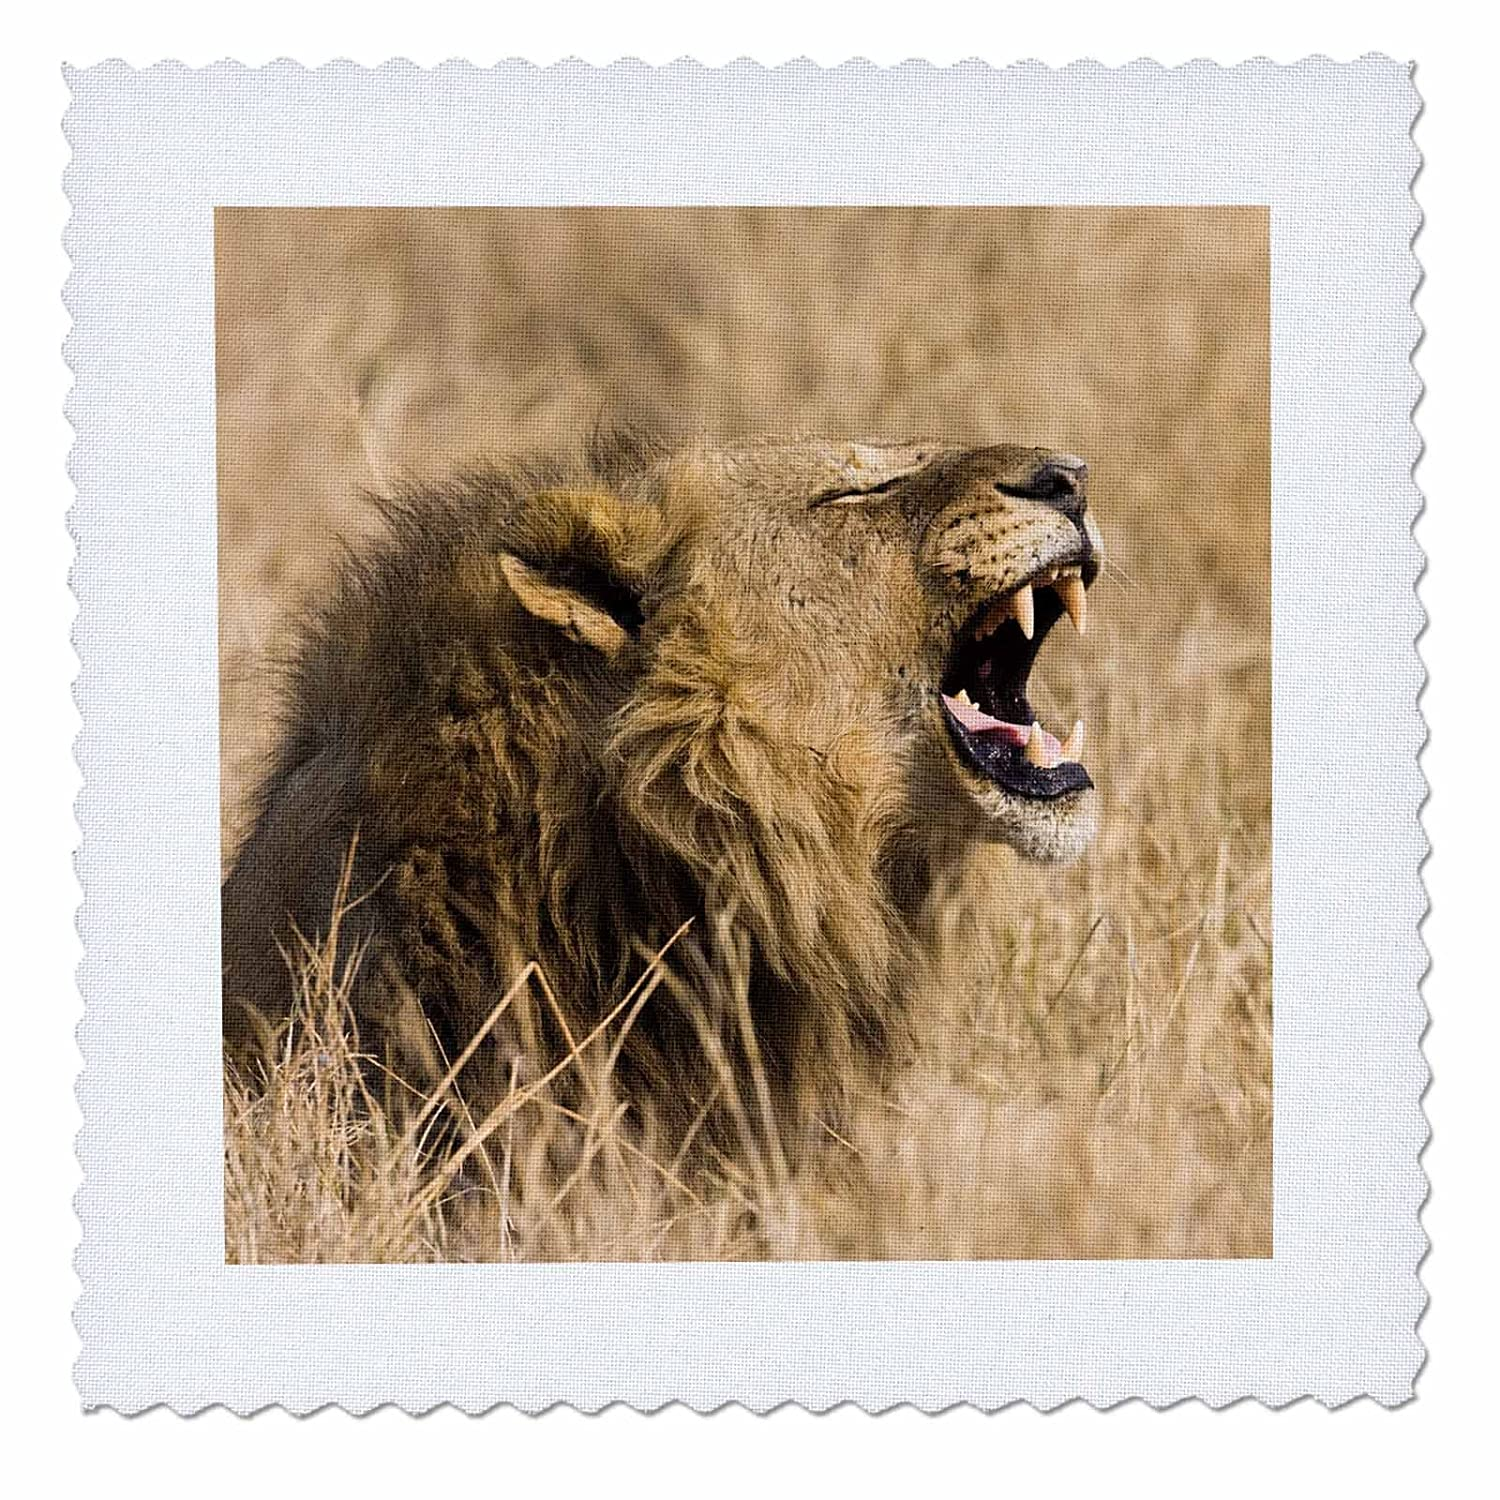 3D Rose Okavango Delta Botswana Close Up of Male Lion Roaring Square 12 by 12 Inch Quilt 12 x 12